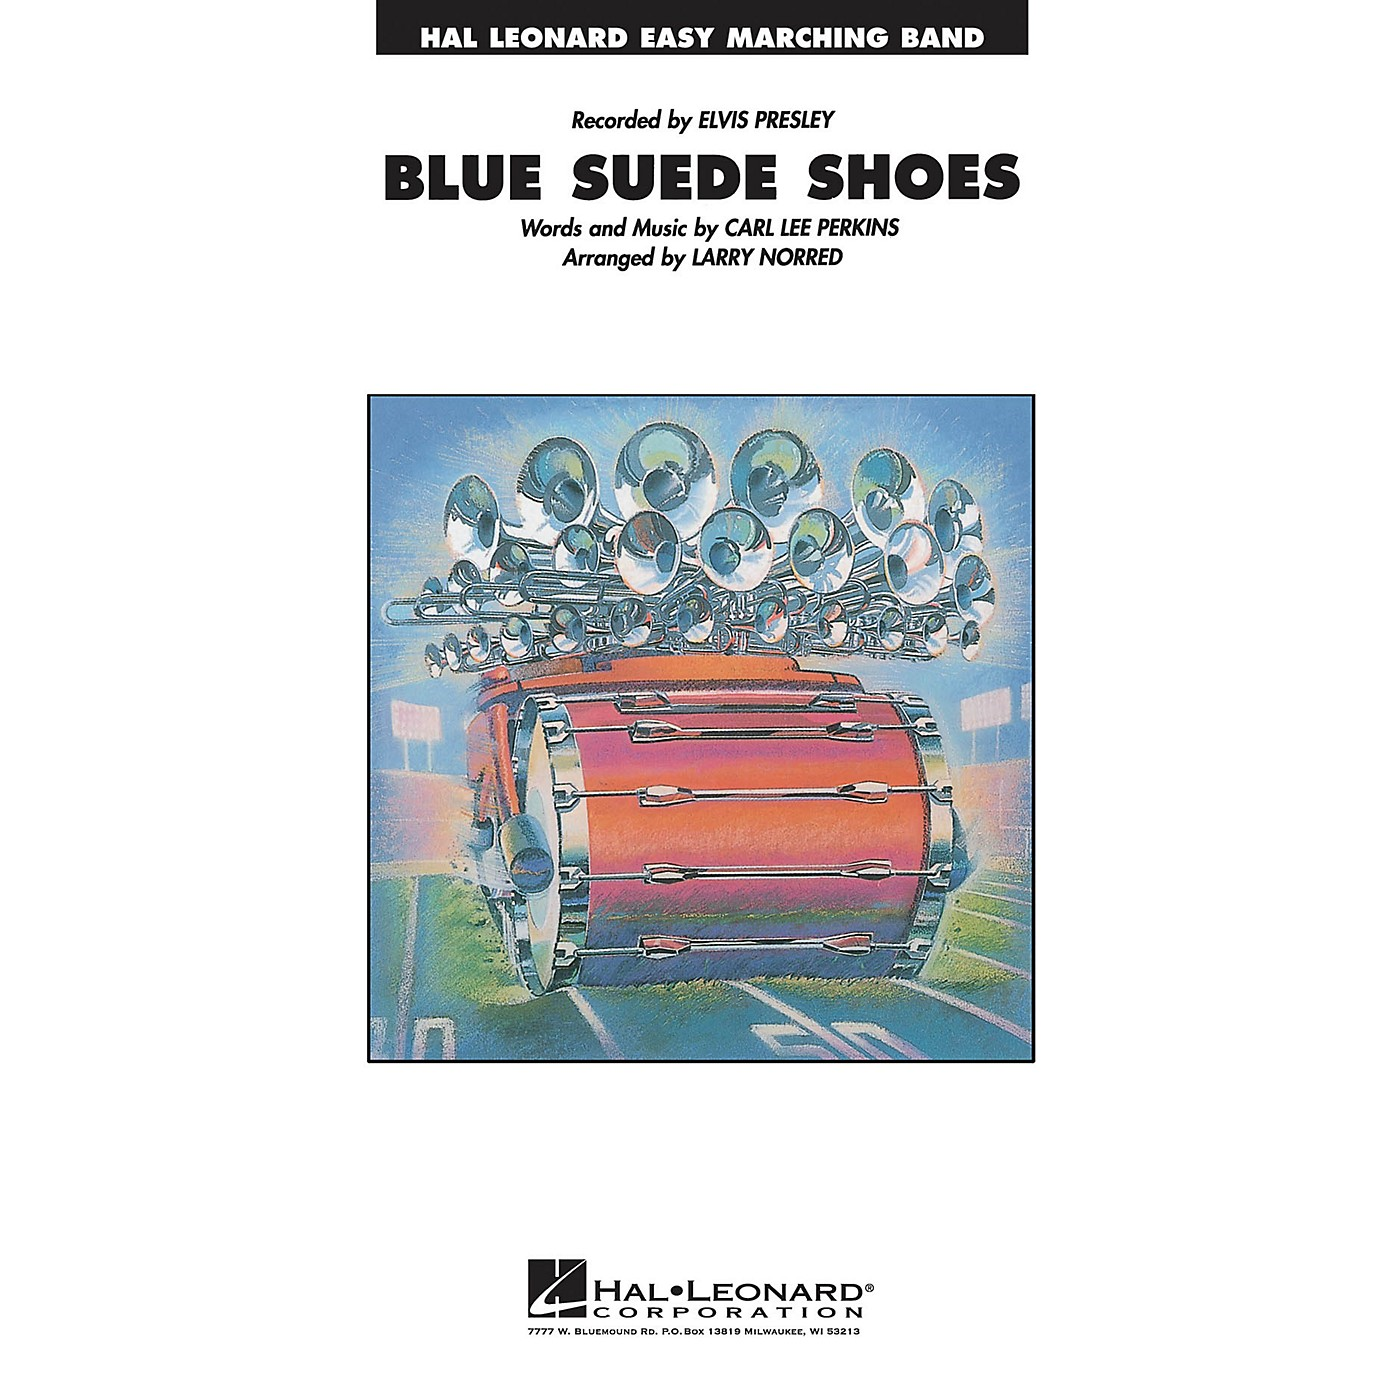 Hal Leonard Blue Suede Shoes Marching Band Level 2-3 Arranged by Larry Norred thumbnail